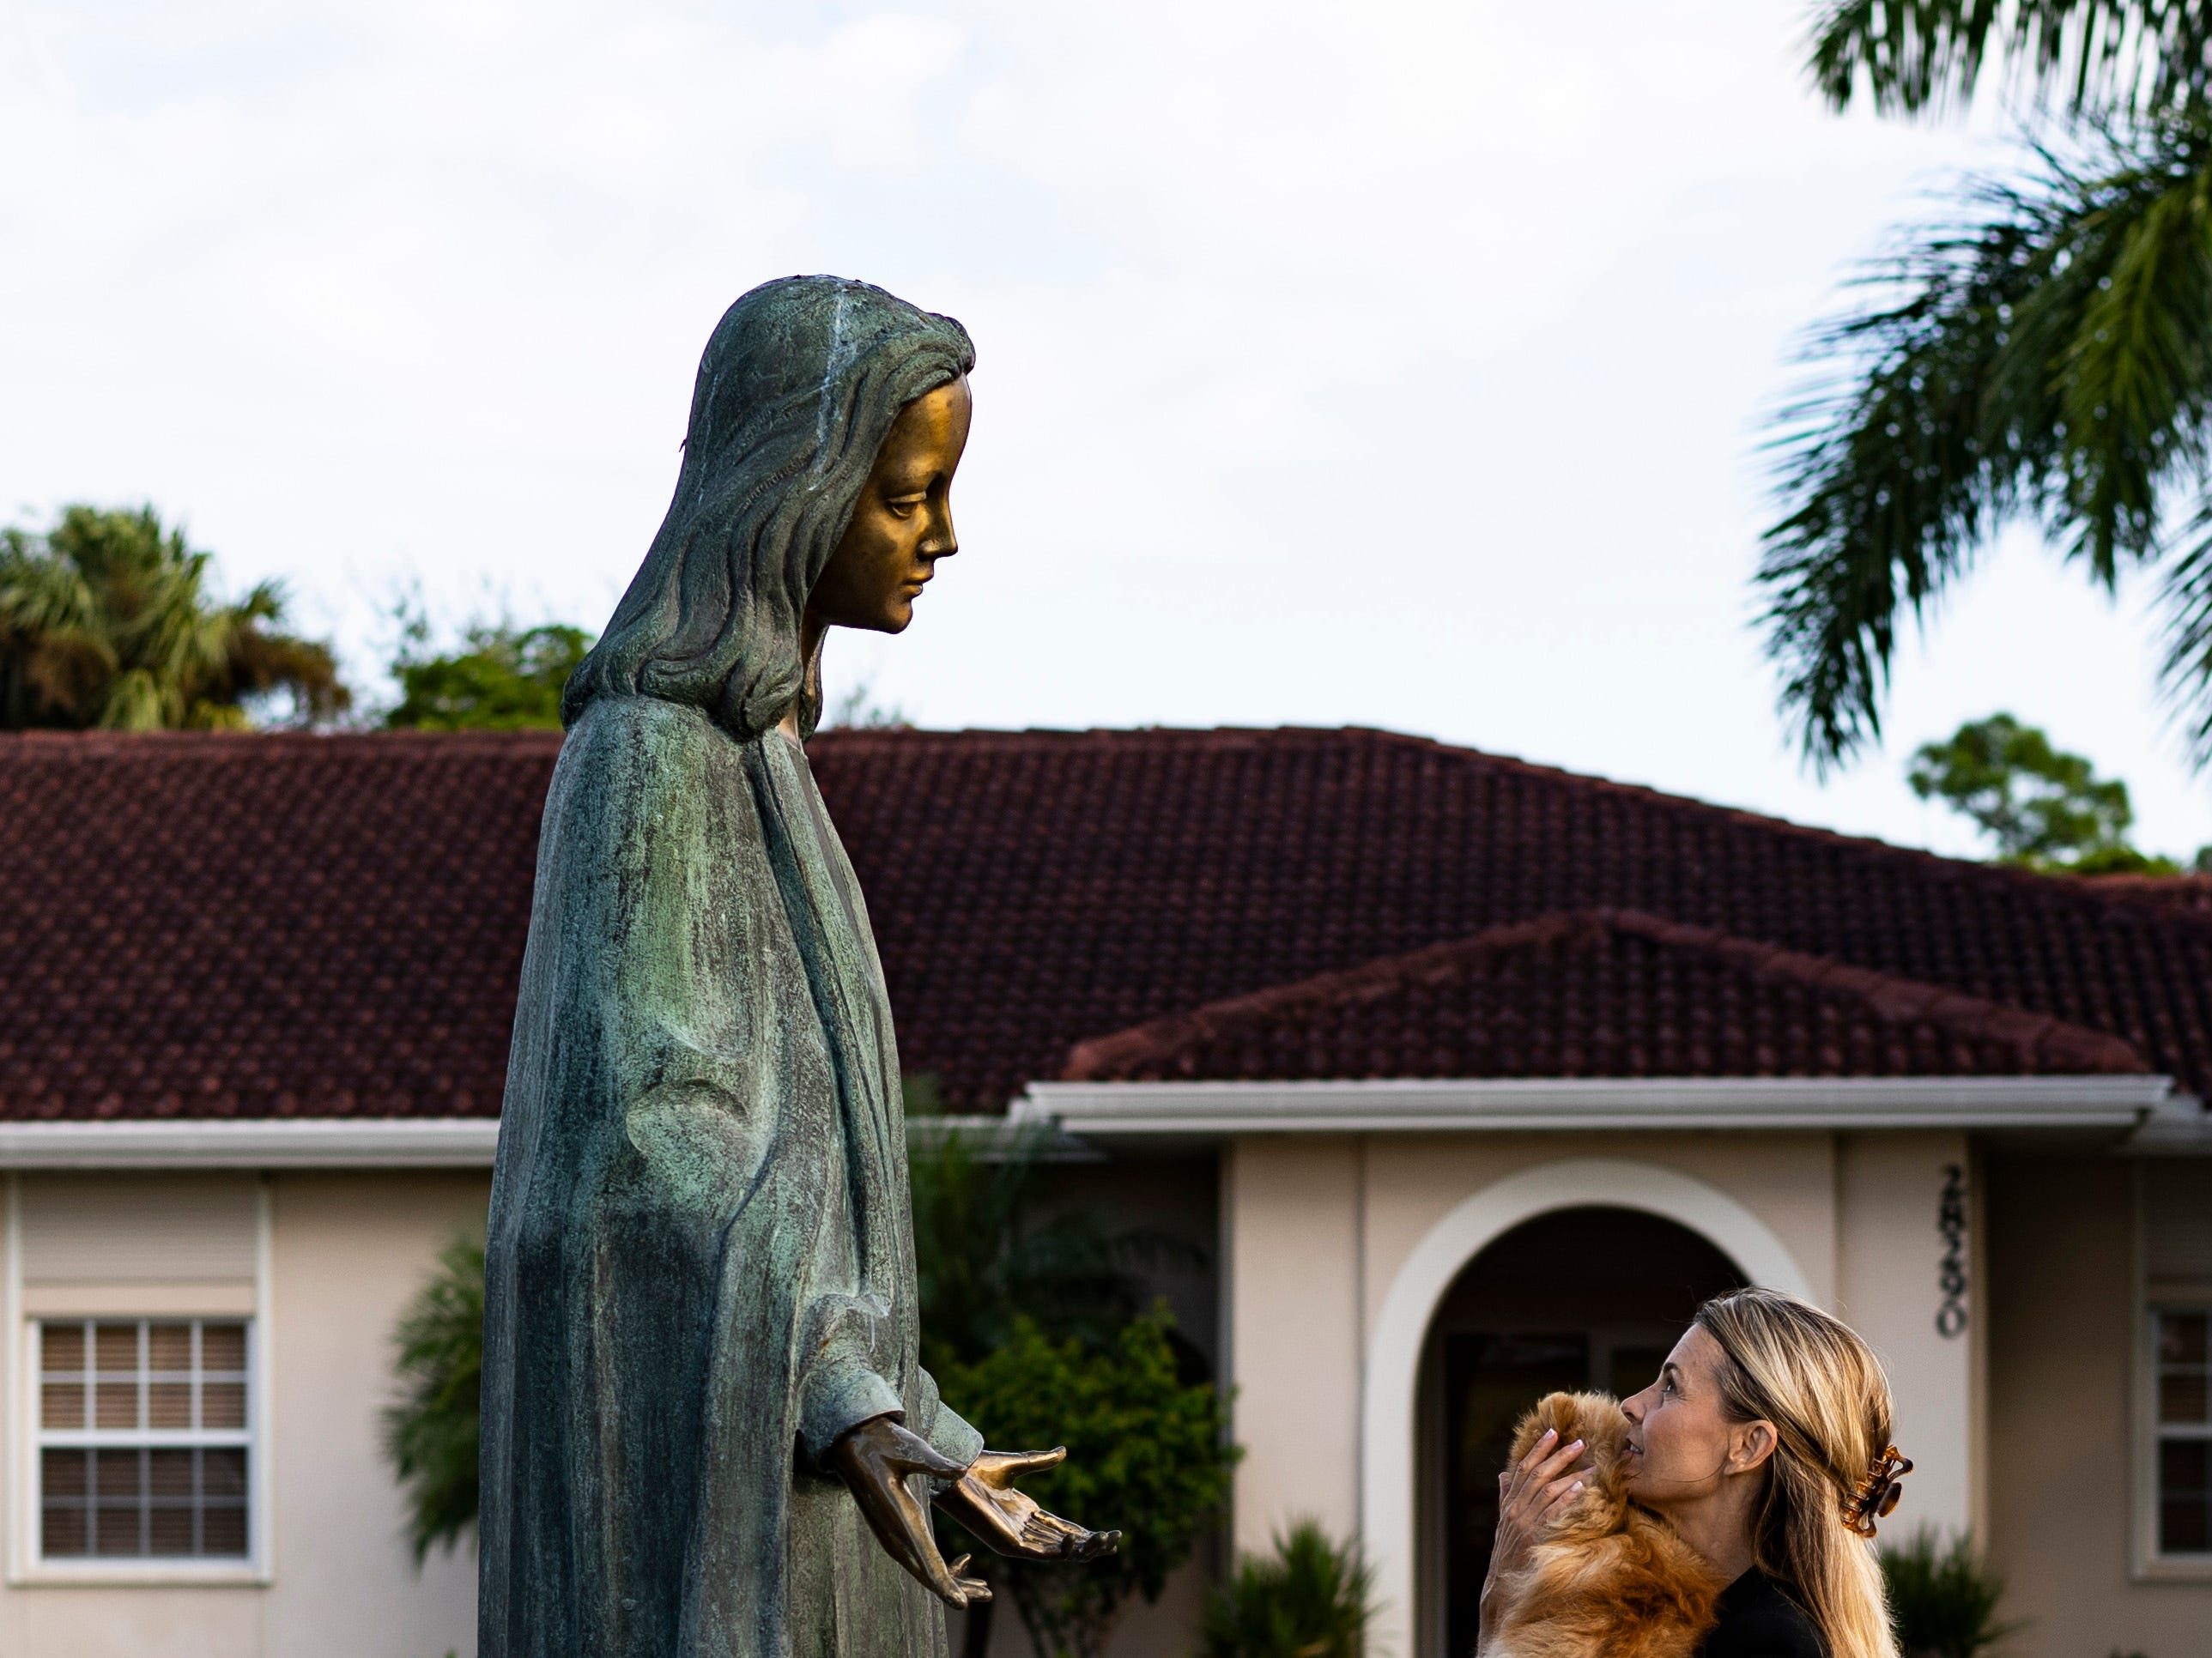 After the blessing ceremony Carrie Caldwell walks up to the  sculpture of Virgin Mary by the front entrance of St. Leo Catholic Church in Bonita Springs, saying her morning prayers while embracing her 9-month-old Pomeranian named Pommie.